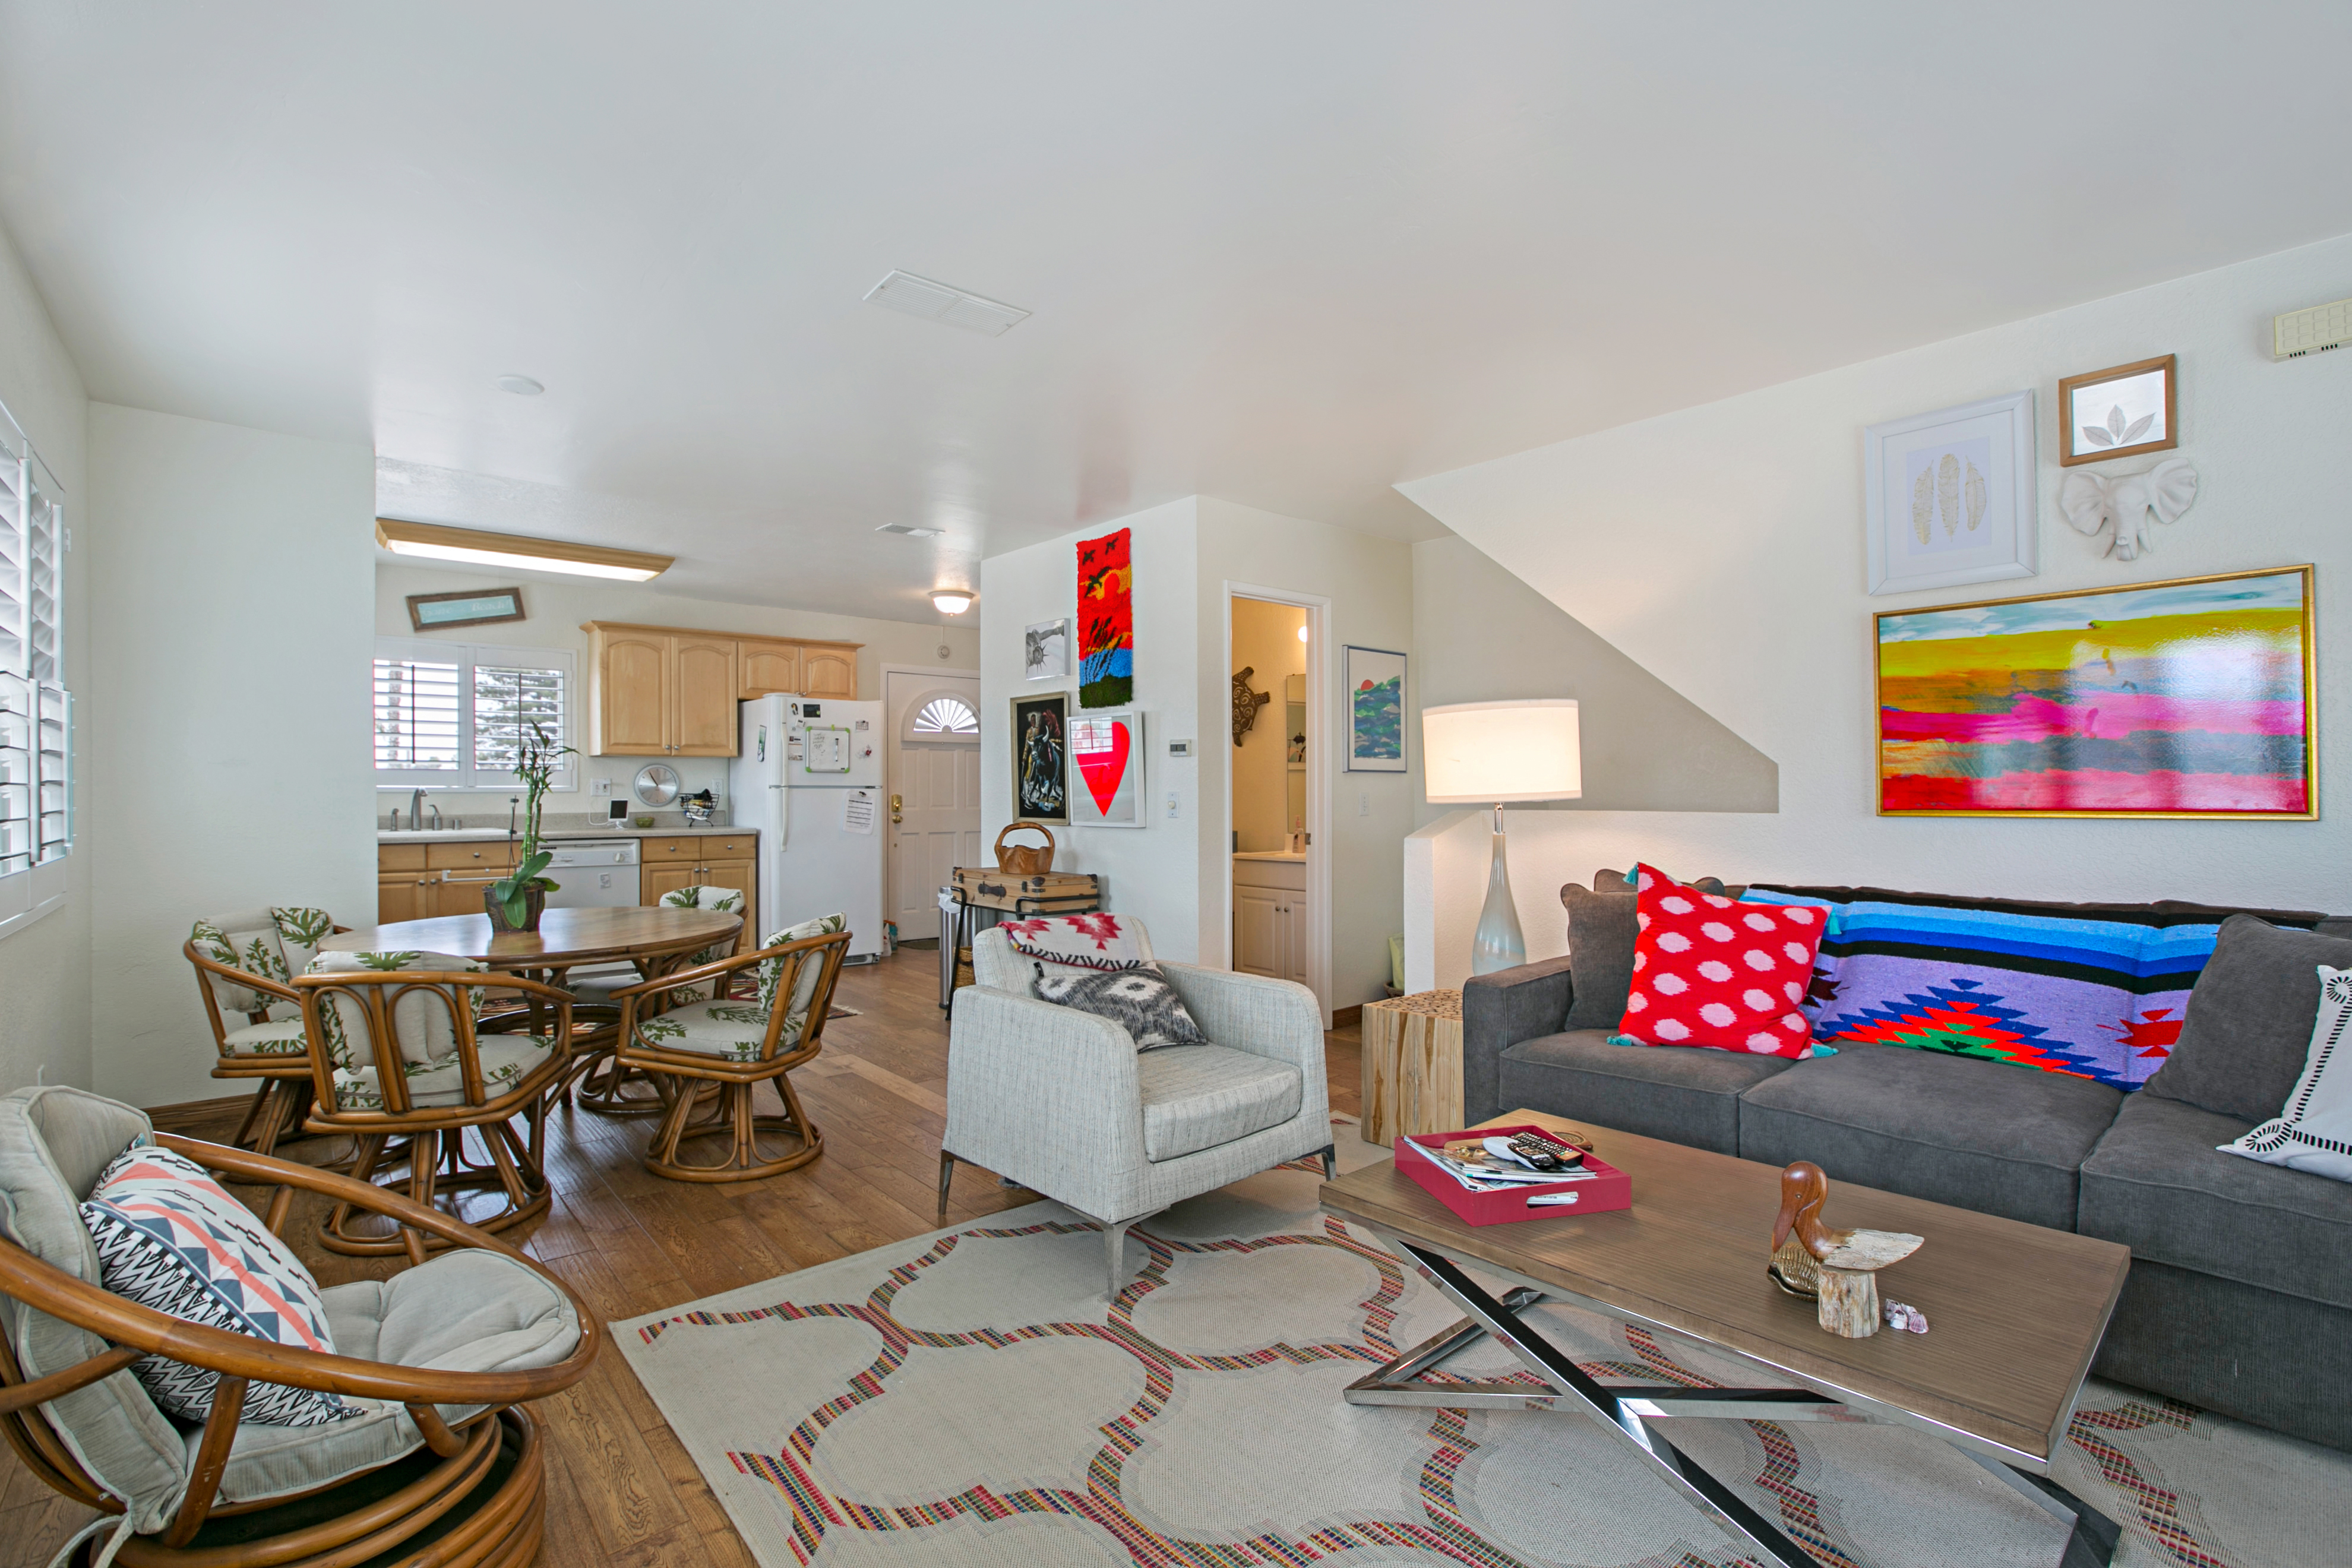 Imperial Beach CA Vacation Rental Funky pops of